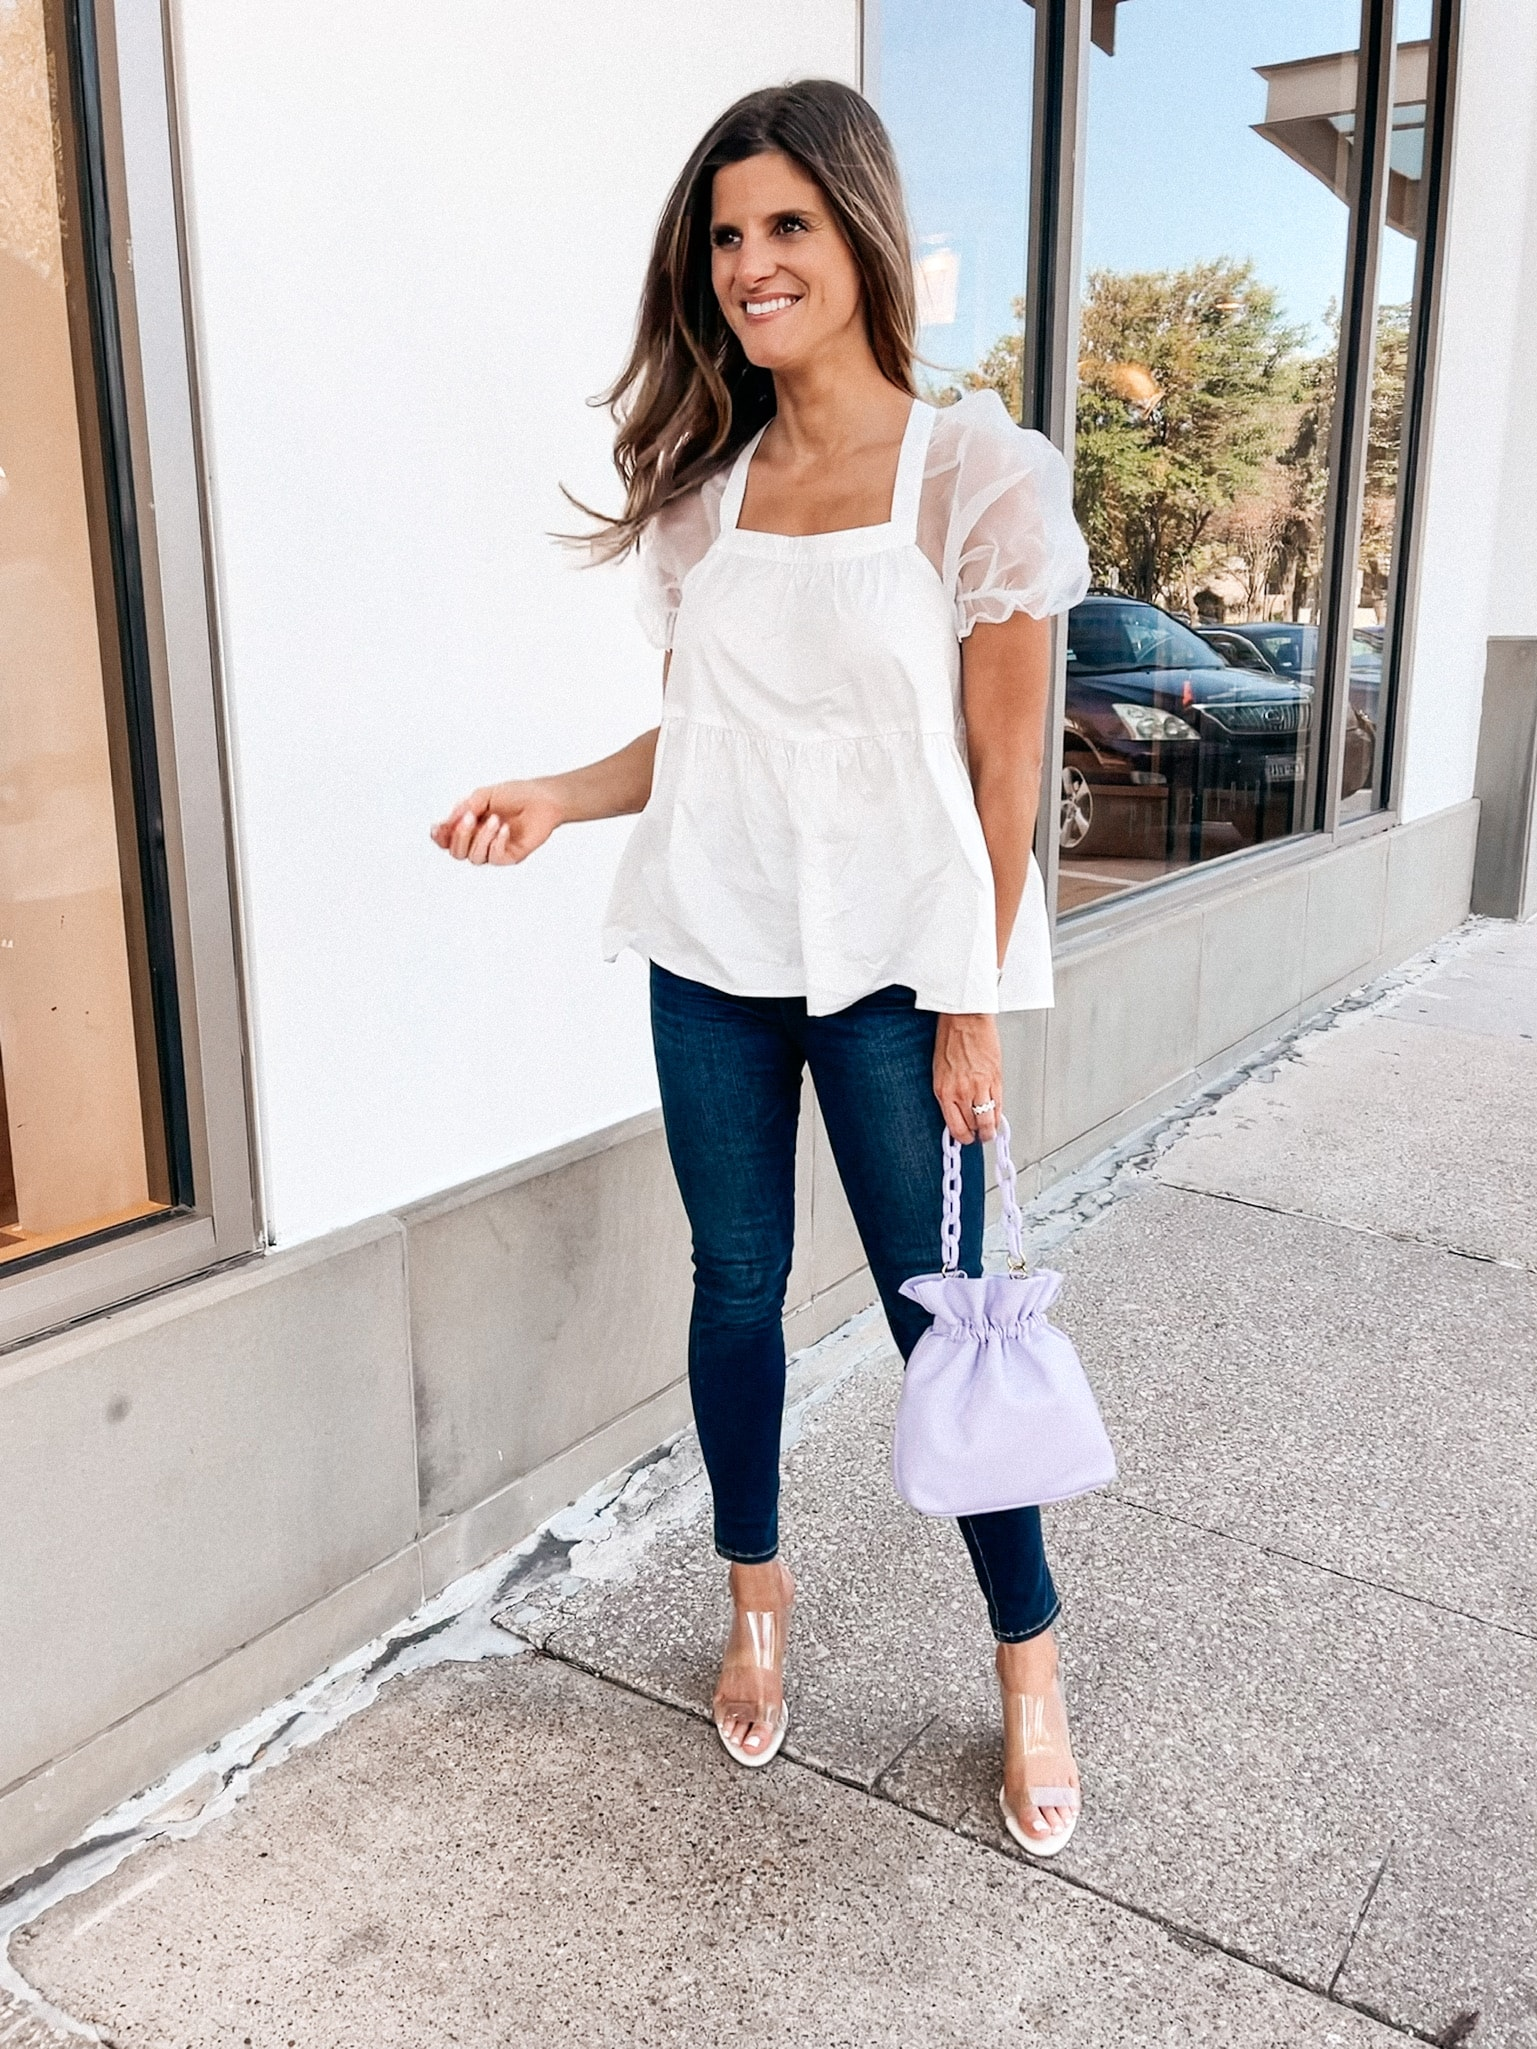 Brighton Butler wearing white puff sleeve top from tuckernuck and jeans